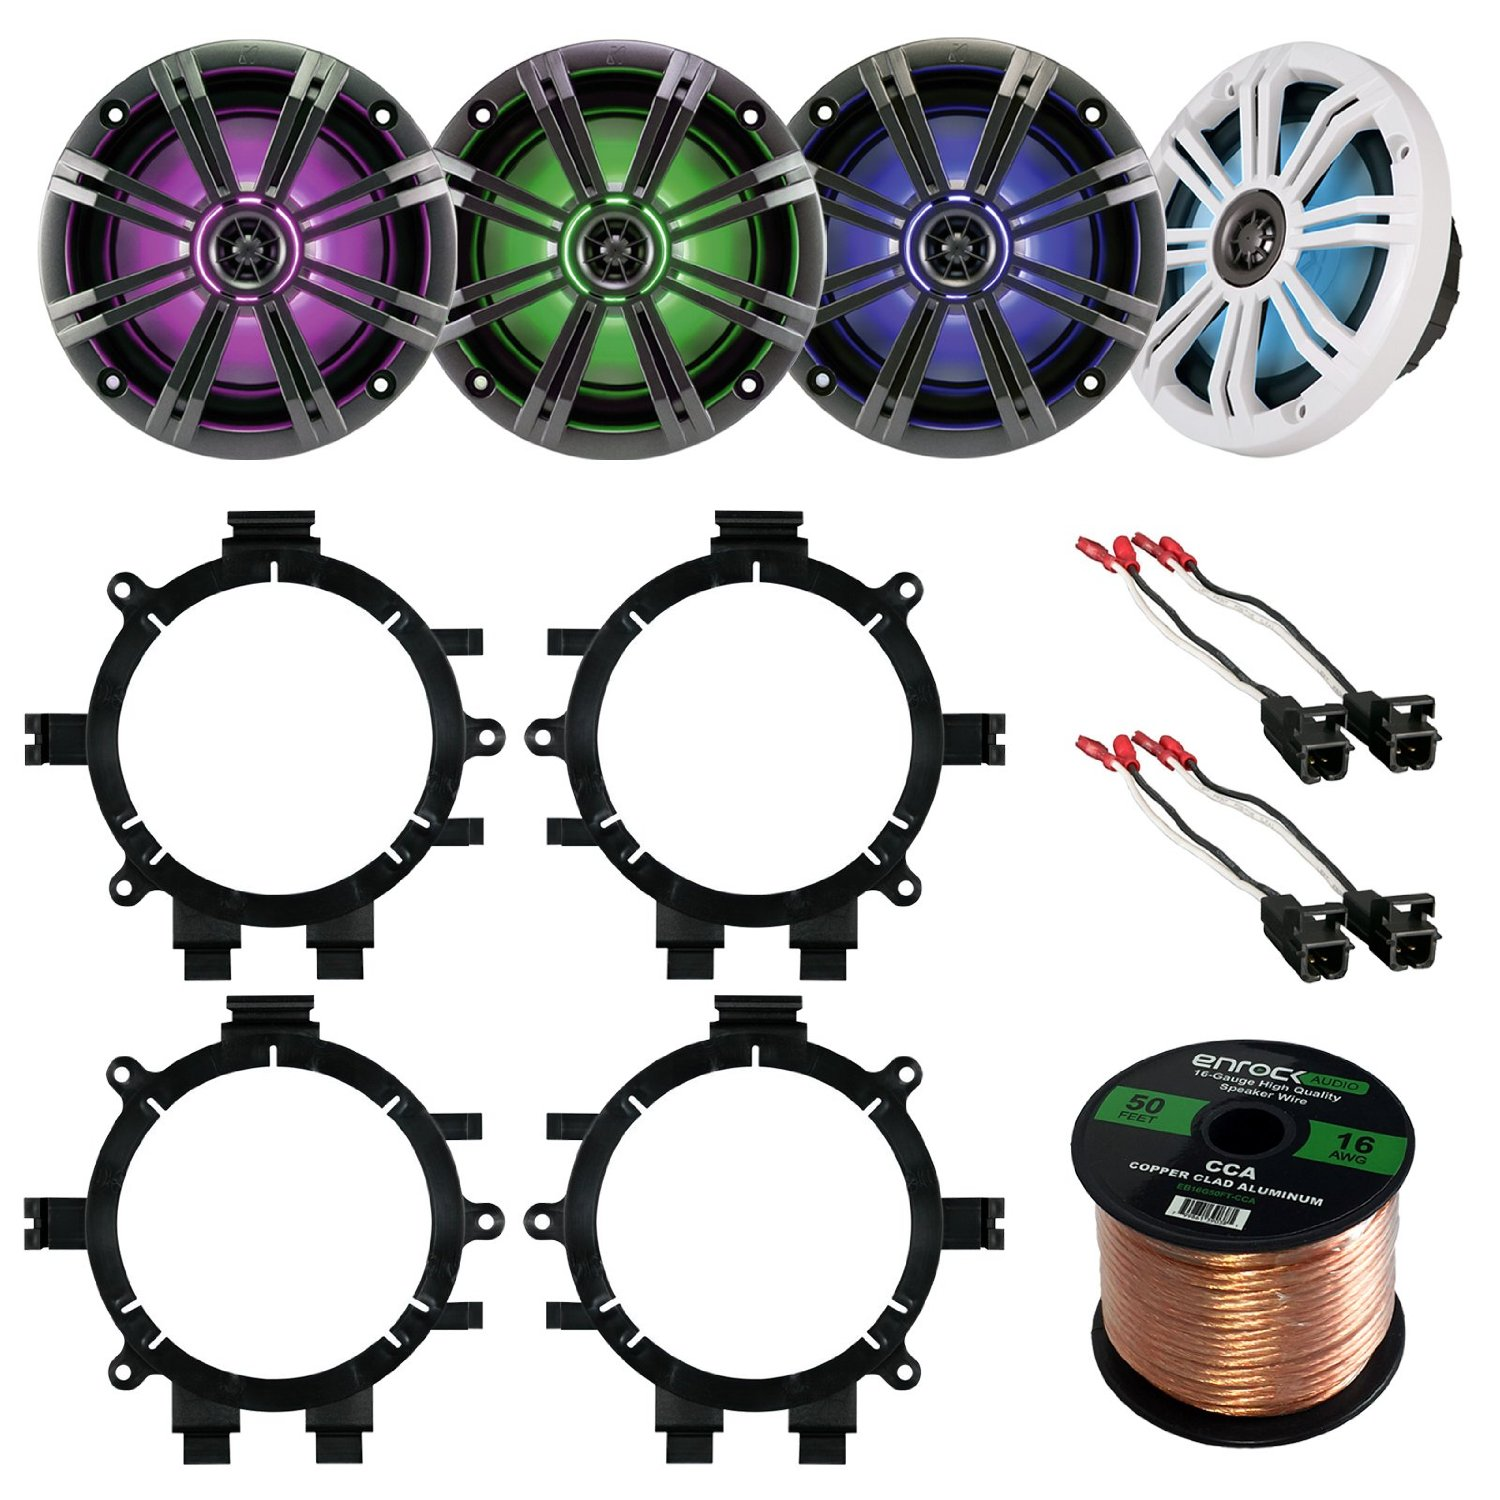 Cheap Car Speaker Wiring Diagram Find Audio Get Quotations Bundle Combo 2 Pairs Of Kicker 43km654lcw 65 Inch Way